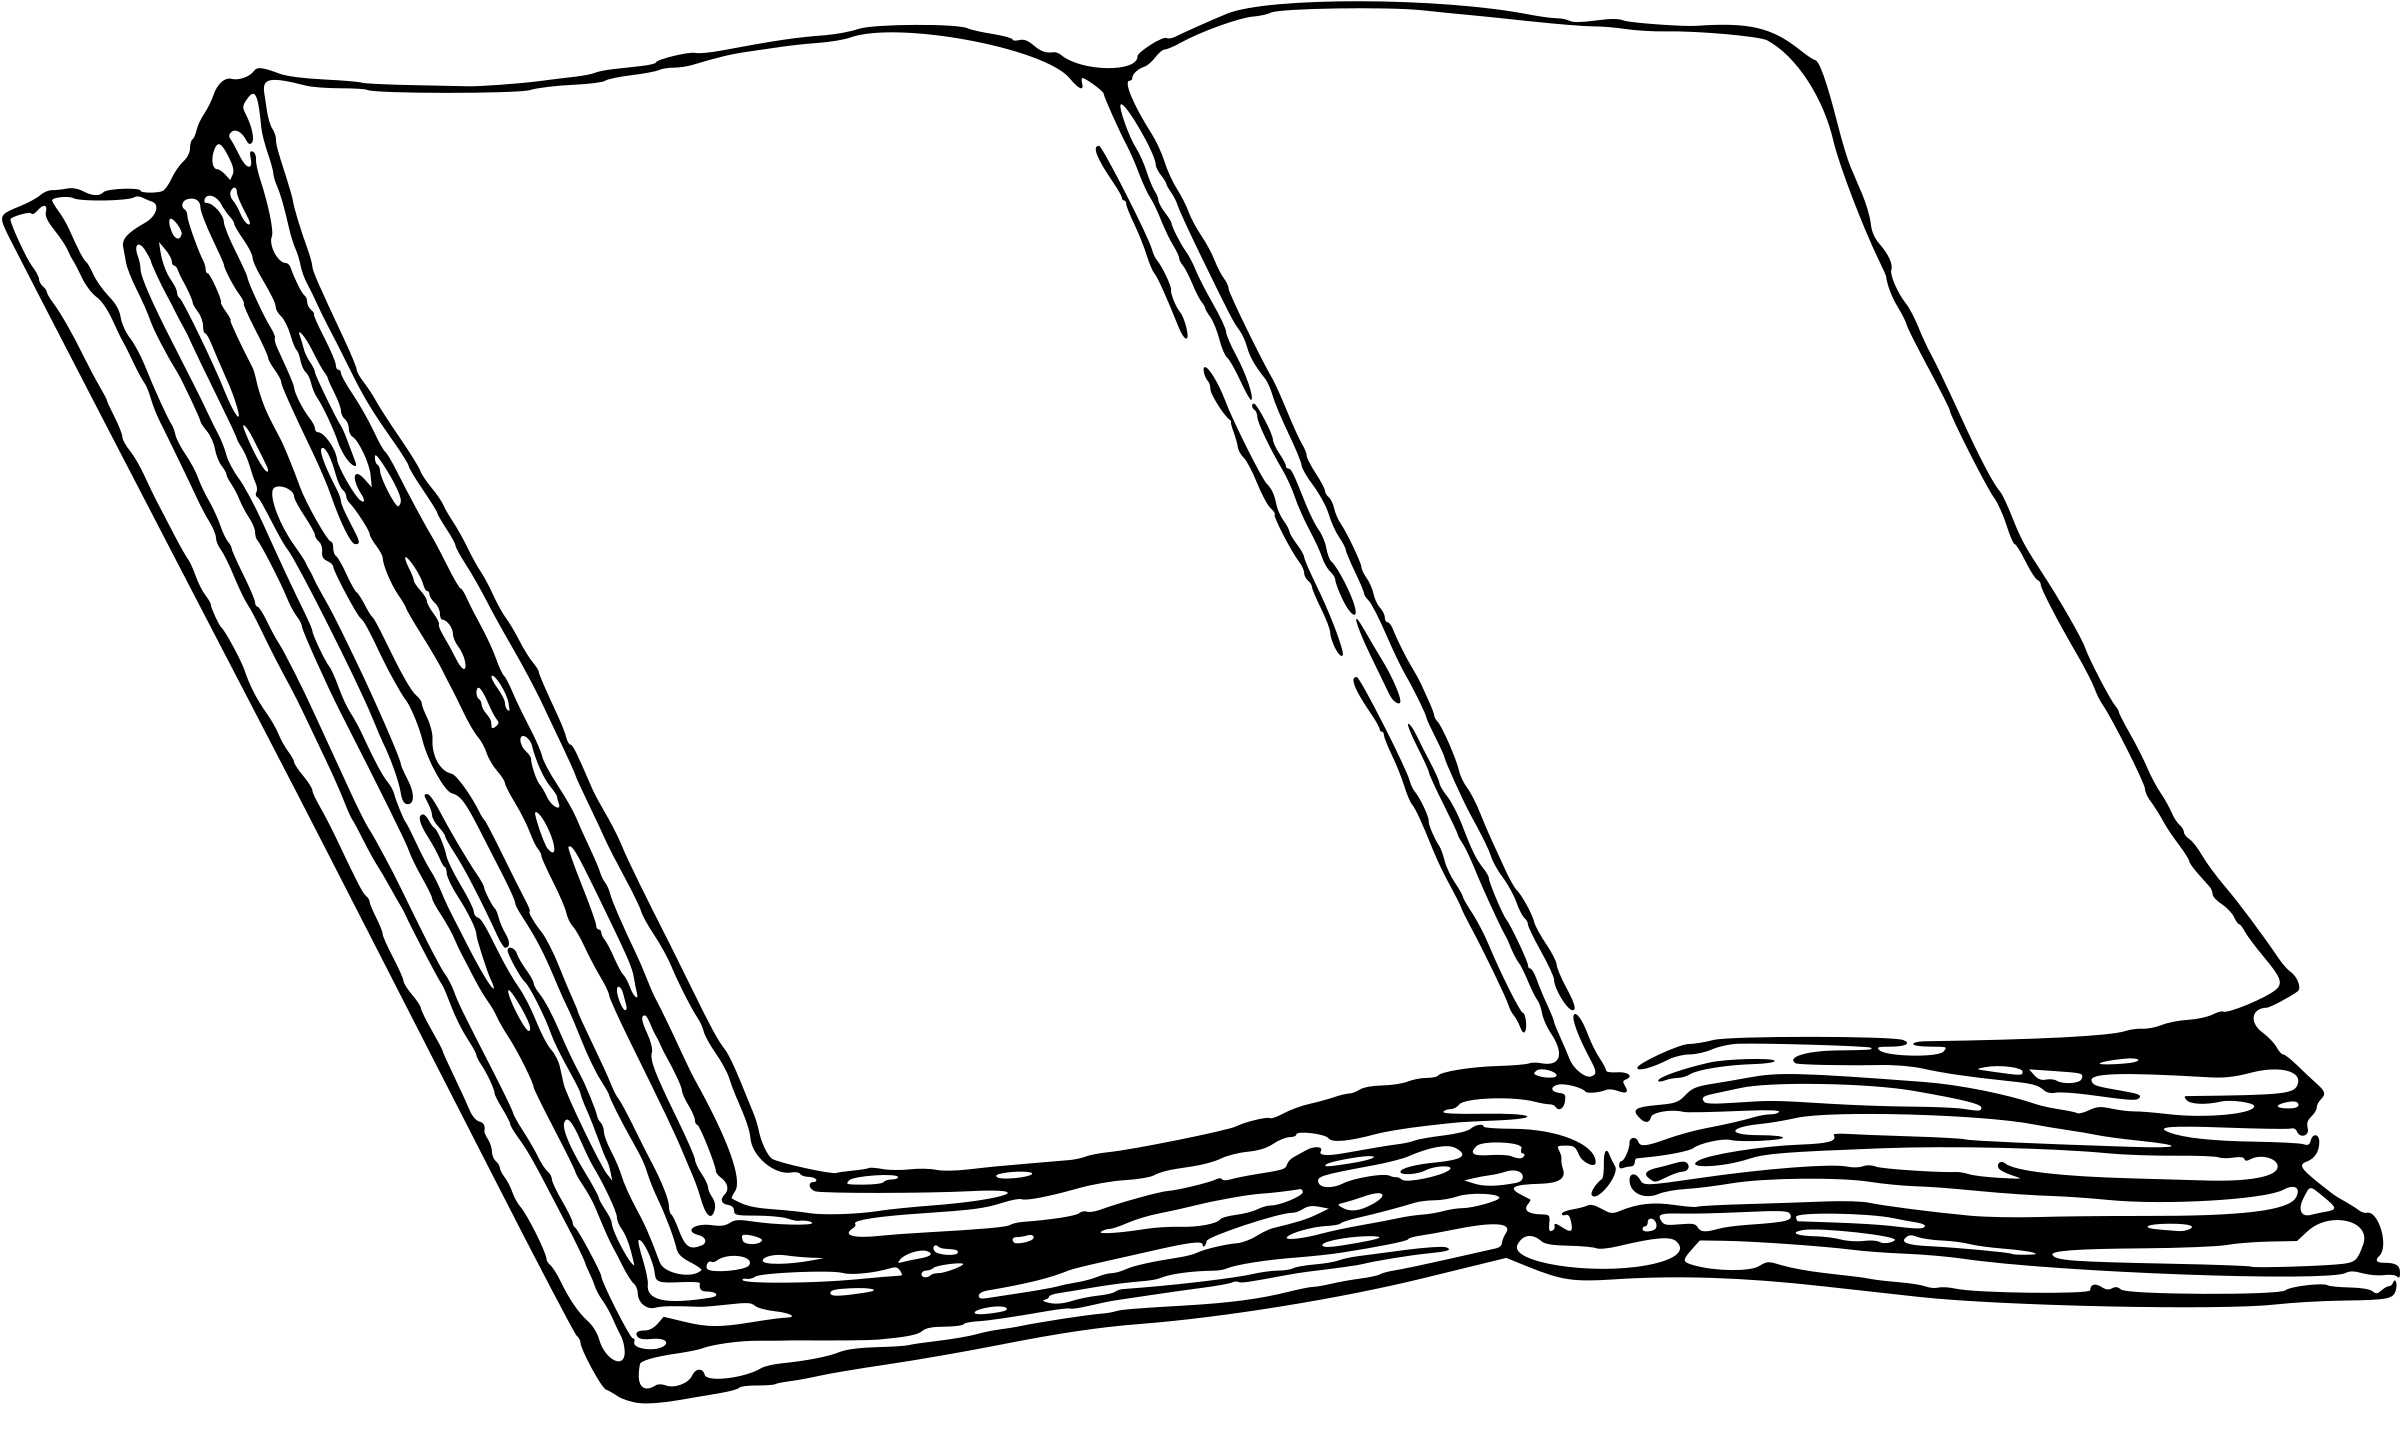 Old Book Vector Clipart Image